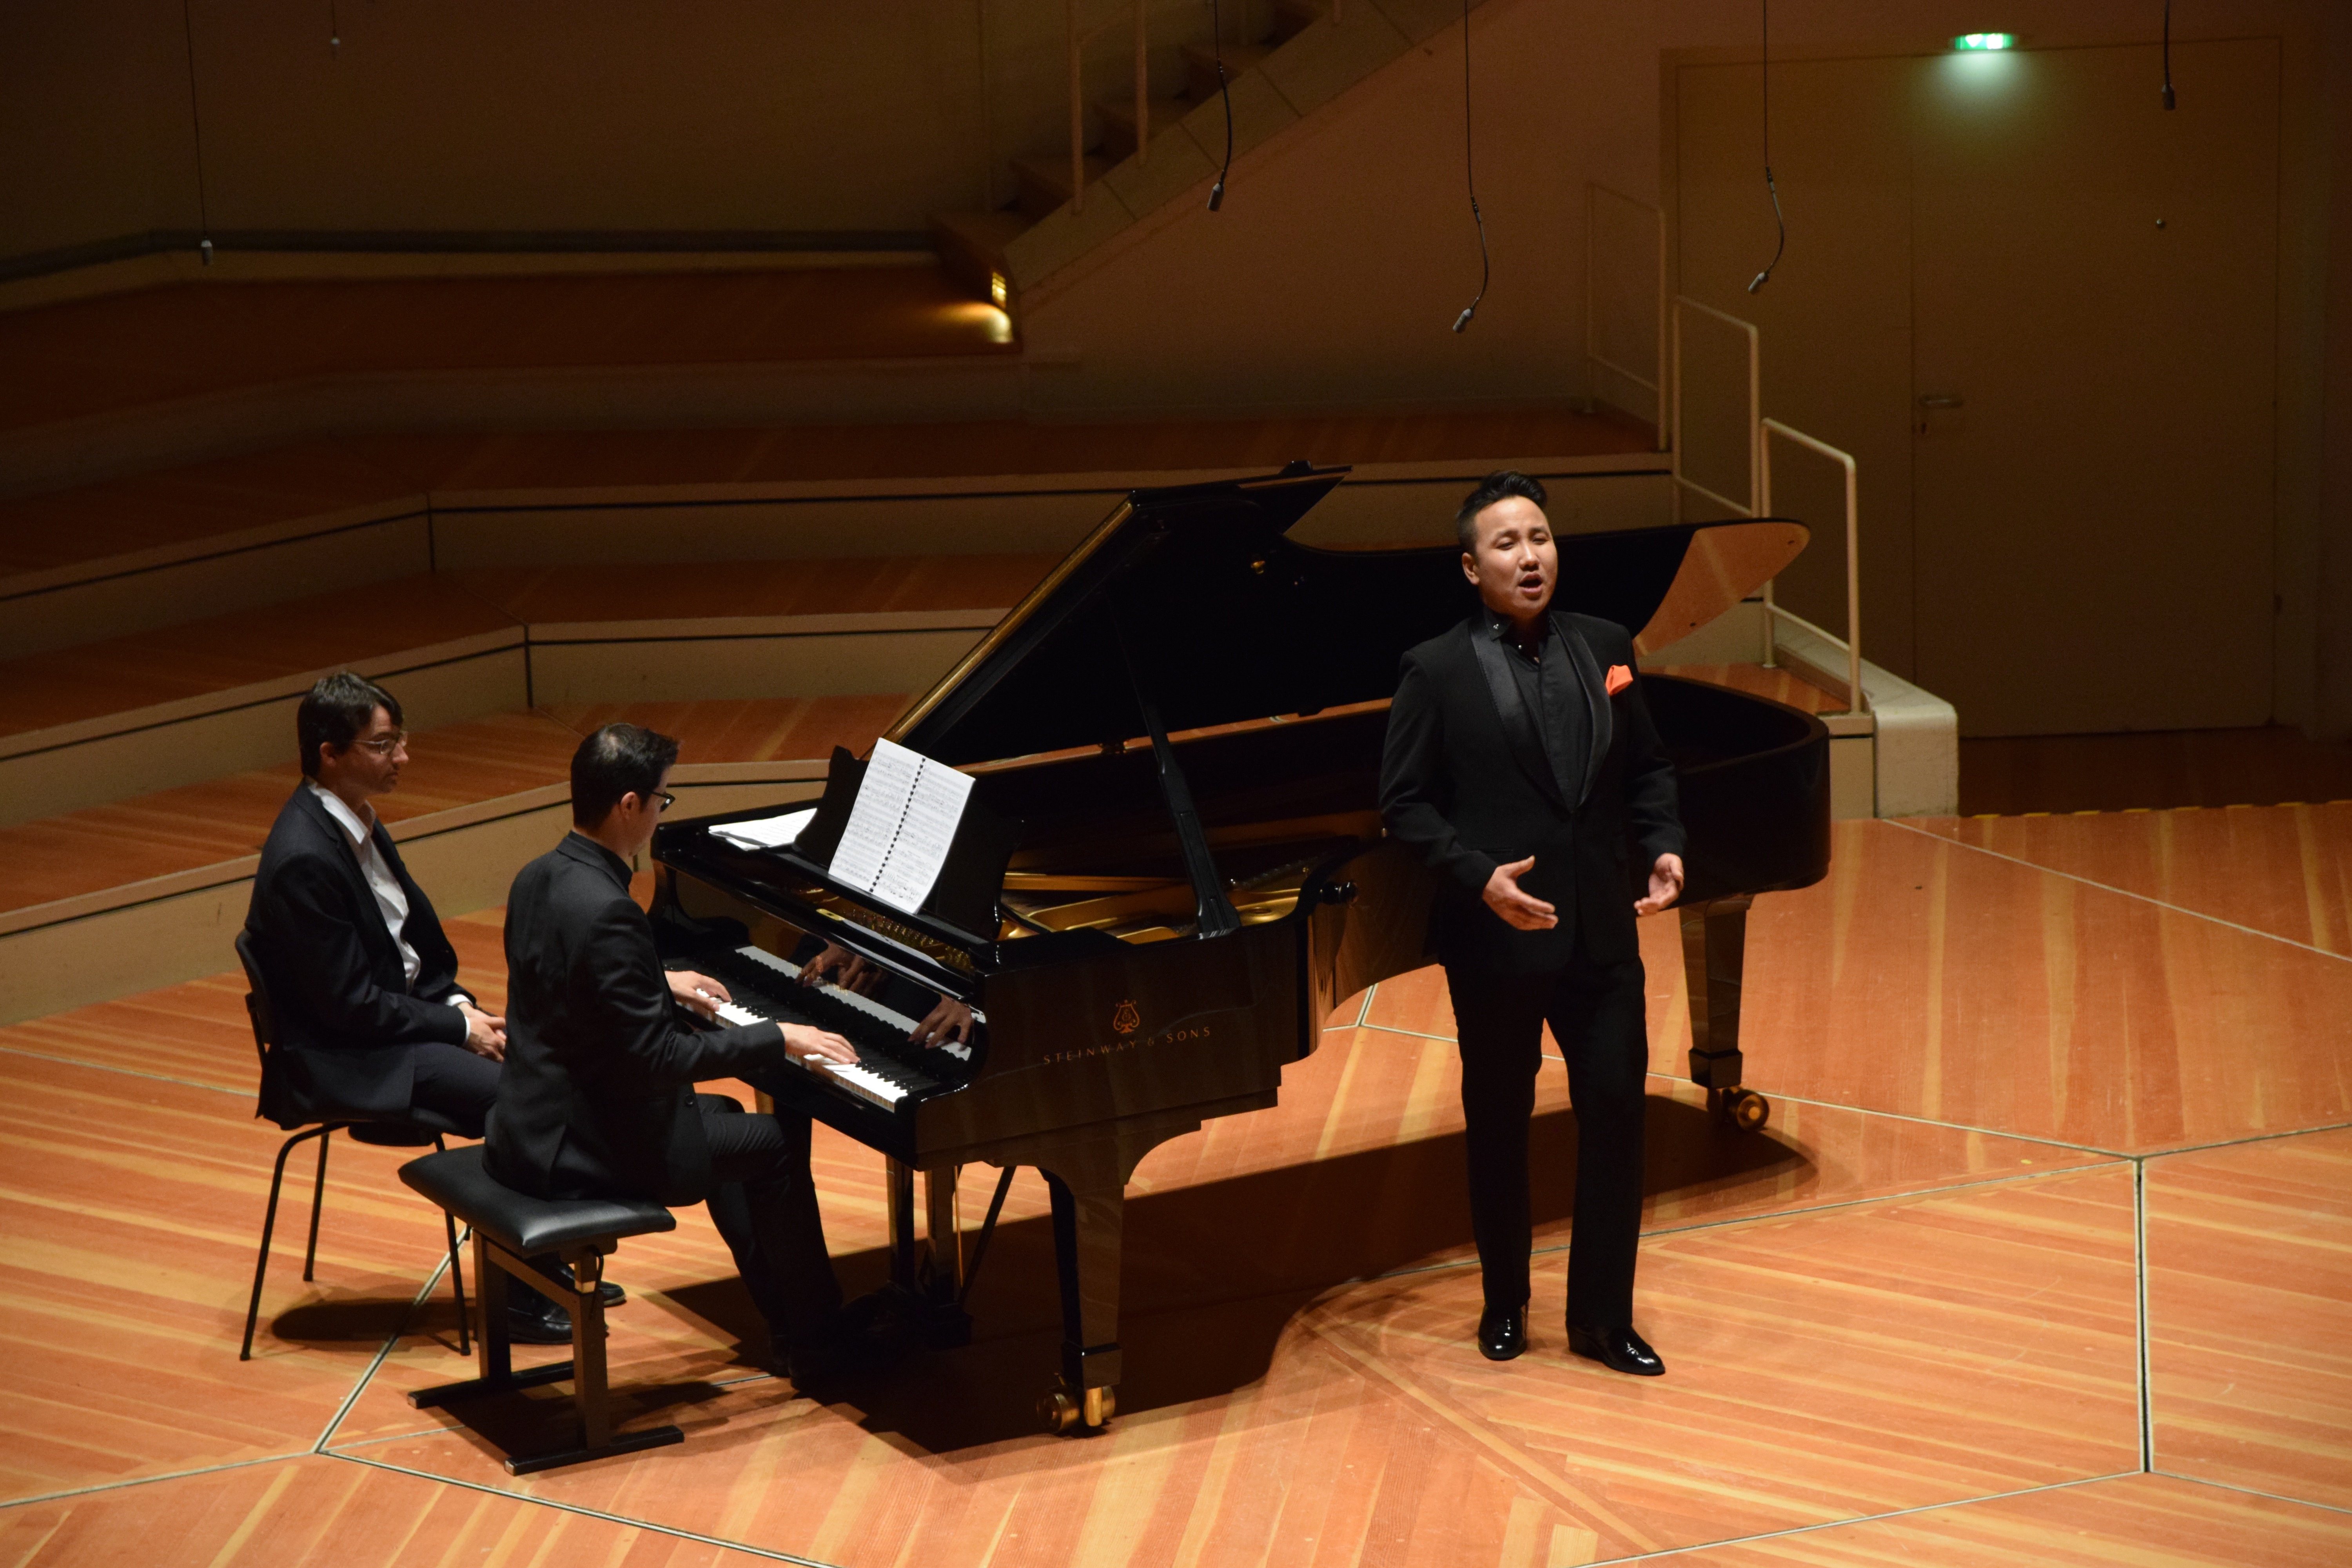 berliner music competition 17